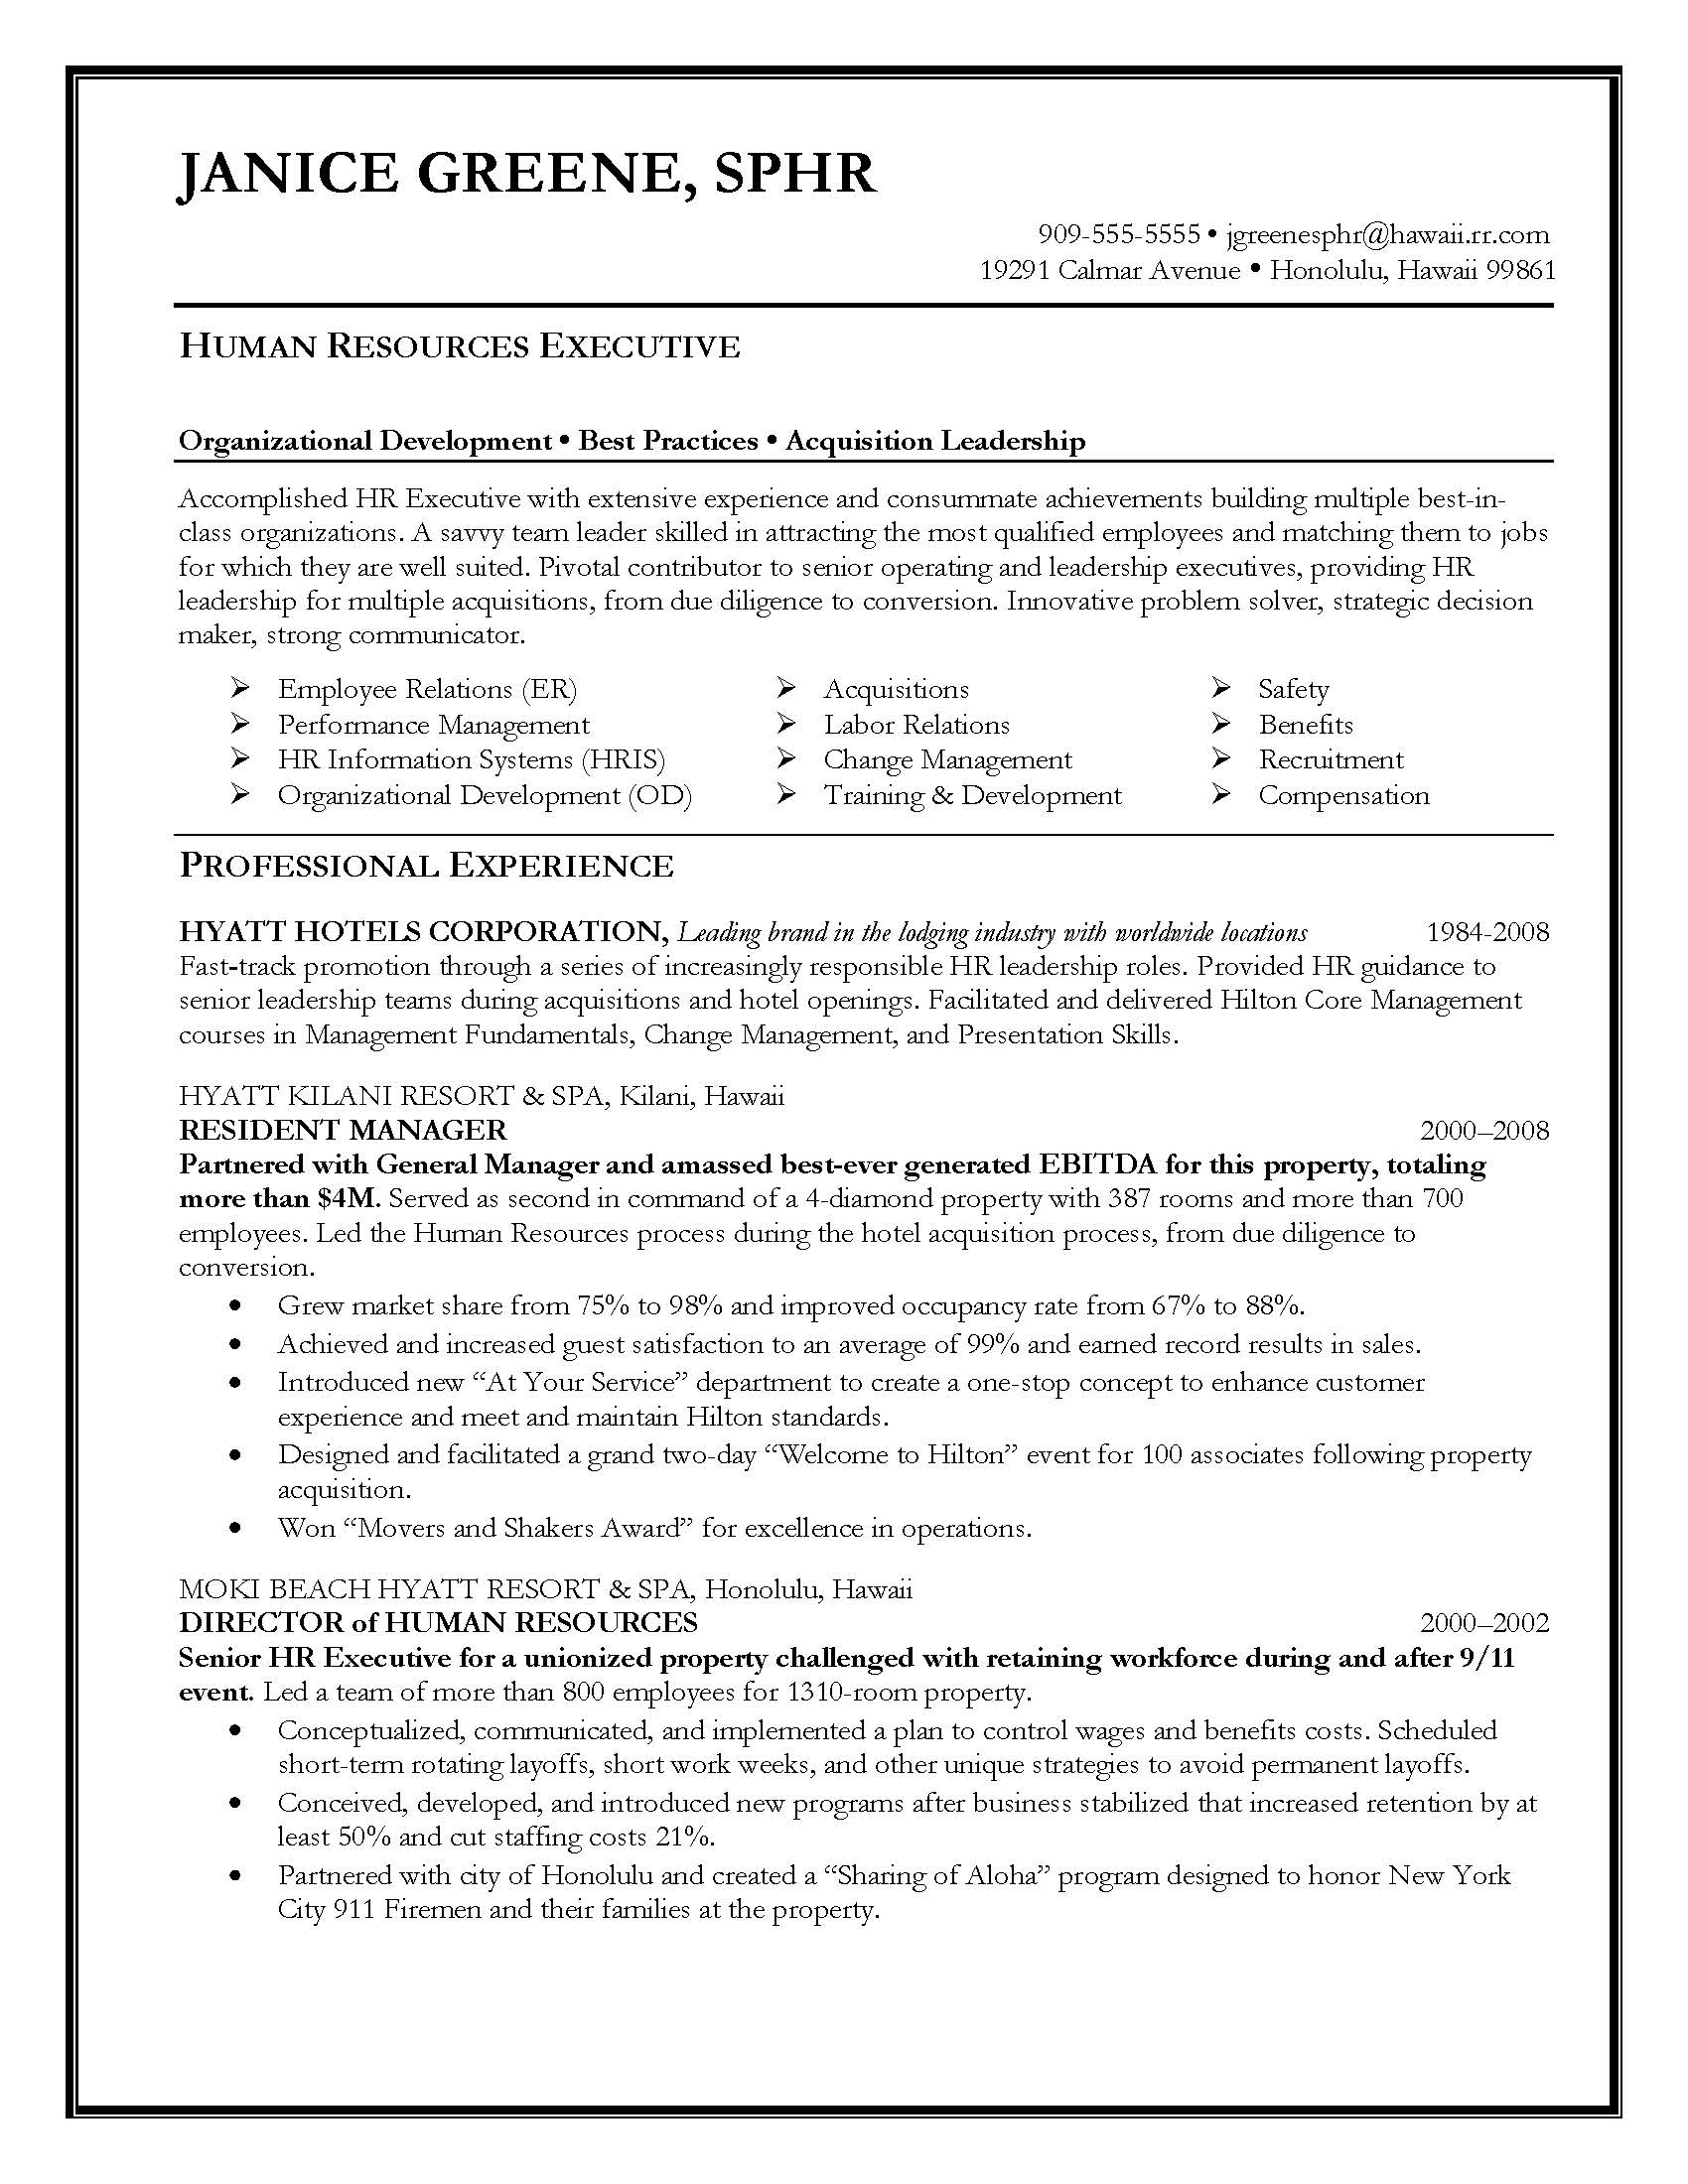 resume samples for general managers resume builder resume samples for general managers resume samples the ultimate guide livecareer executive resume sample provided by